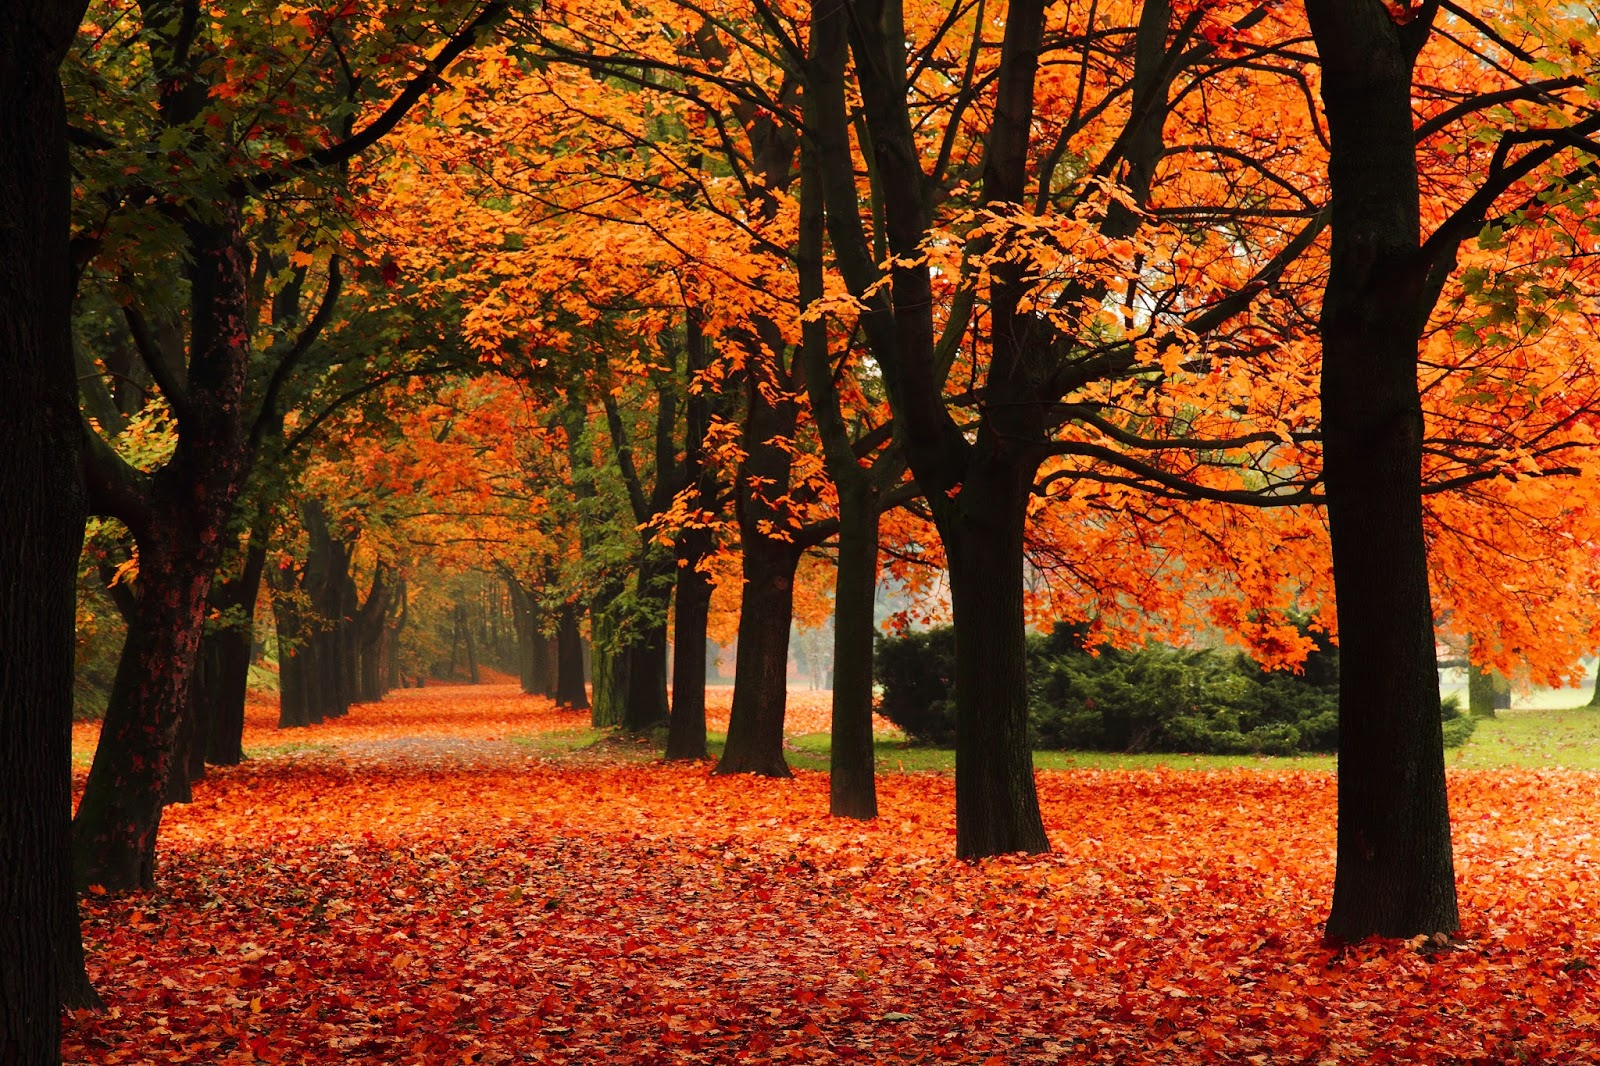 Best Spots to Admire the Fall Foliage  via  www.productreviewmom.com